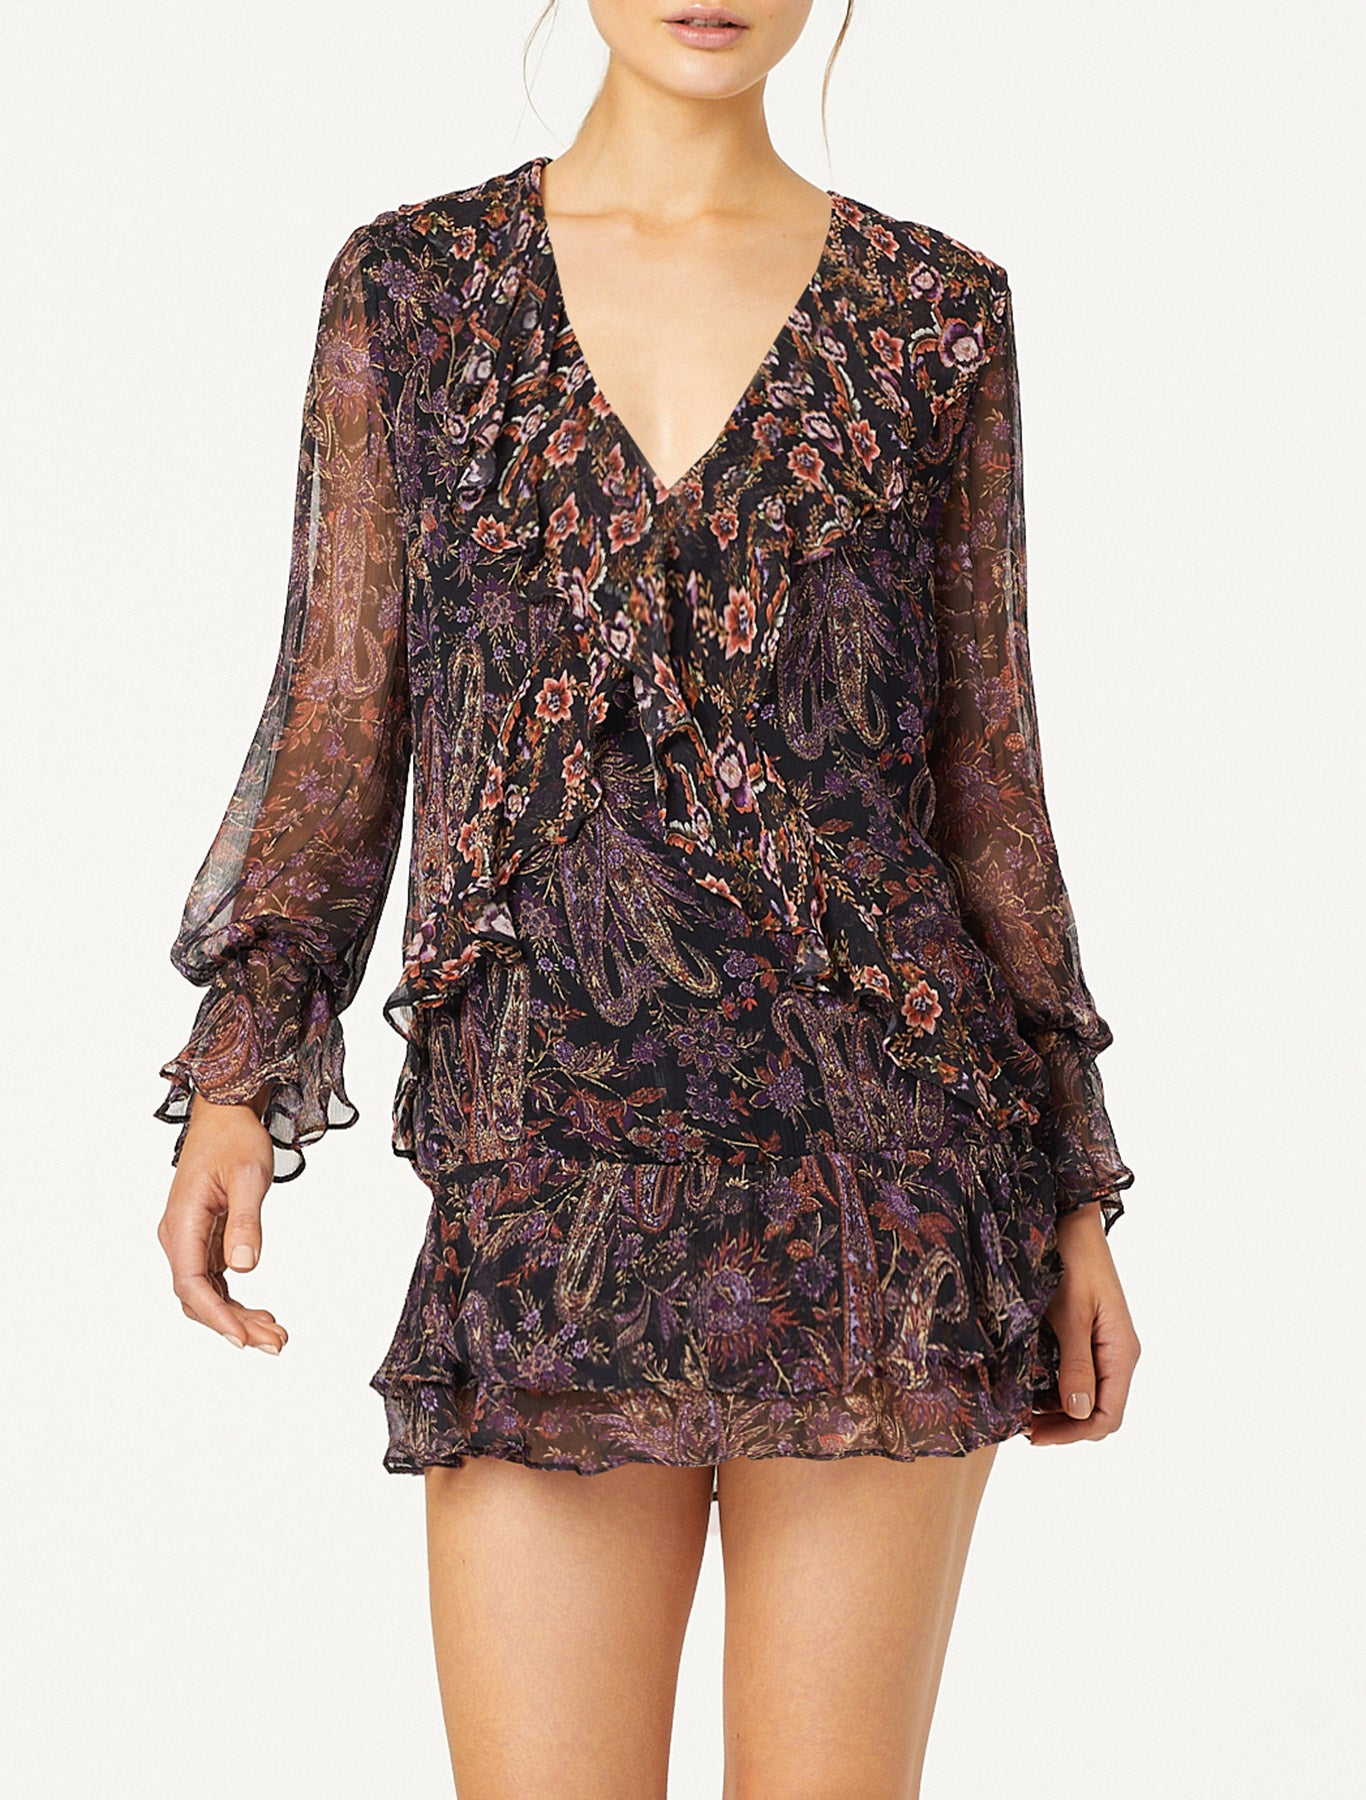 COSMIC LOVE L/S MINI DRESS